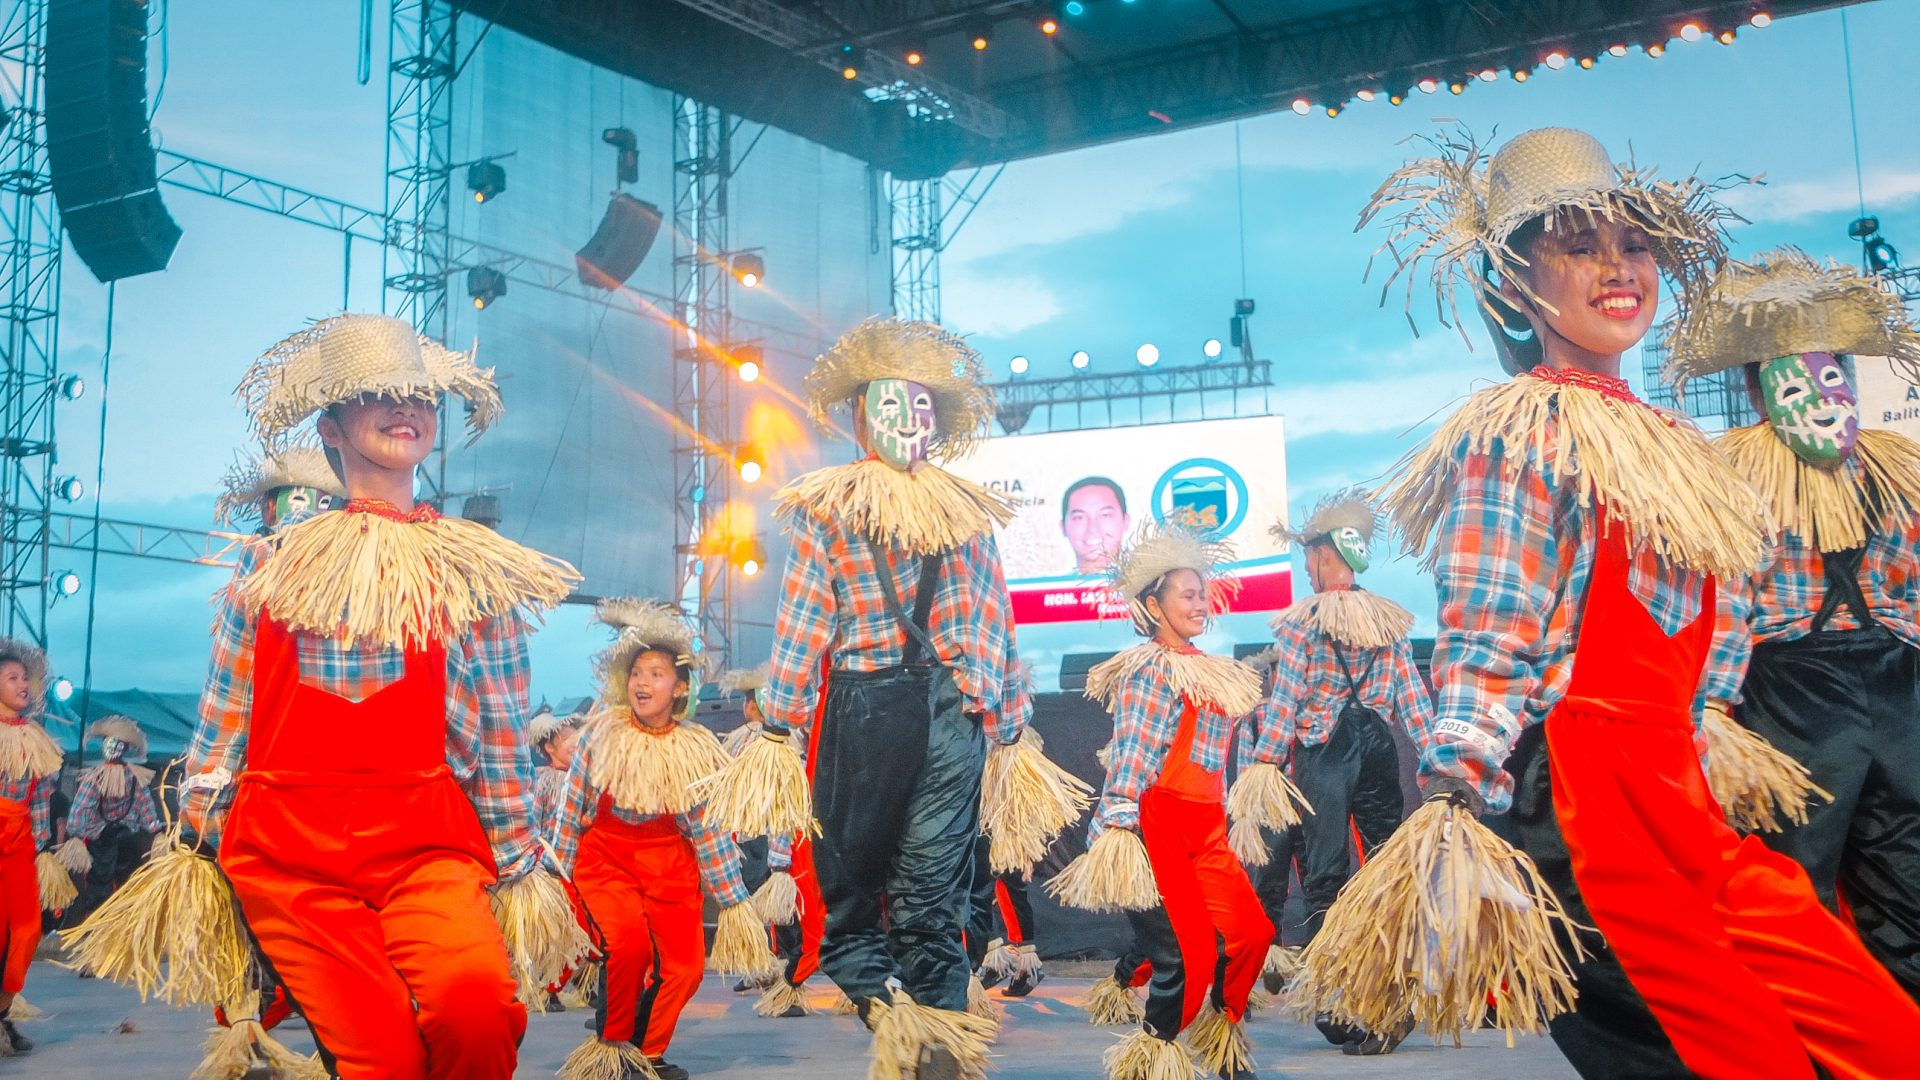 bambanti-festival-2019-in-isabela-achieved-a-guinness-world-record-title